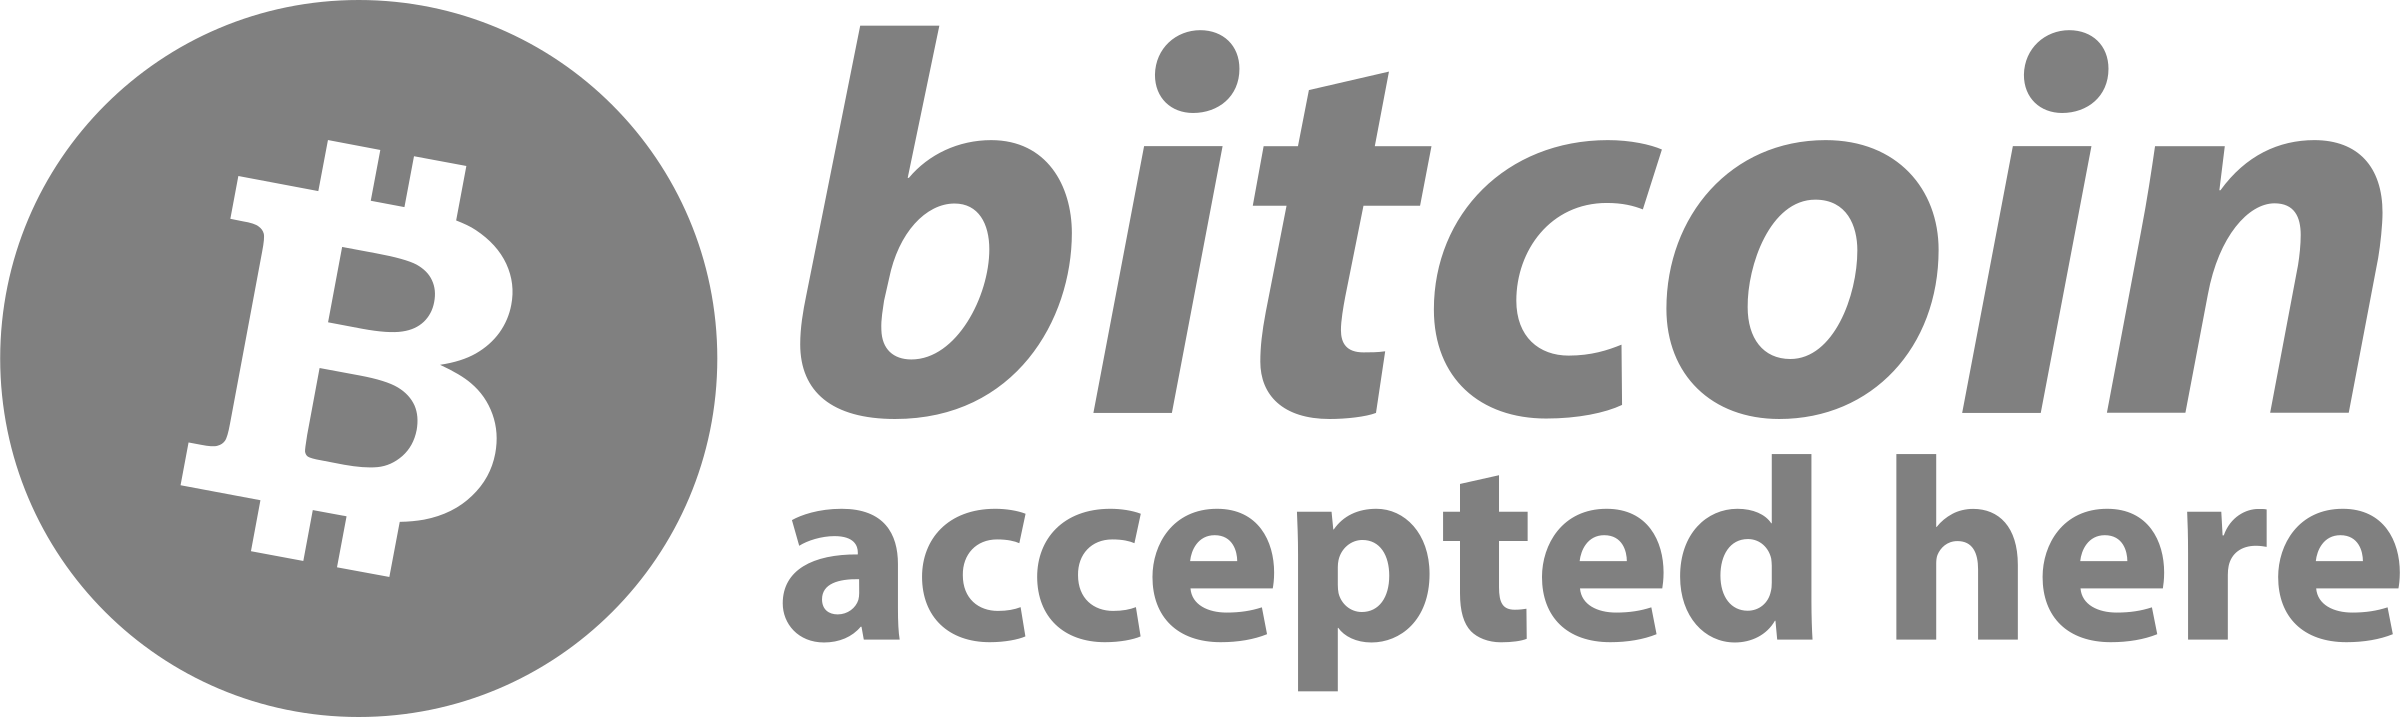 bitcoin-accepted-here-btc-logo-png-transparent.png